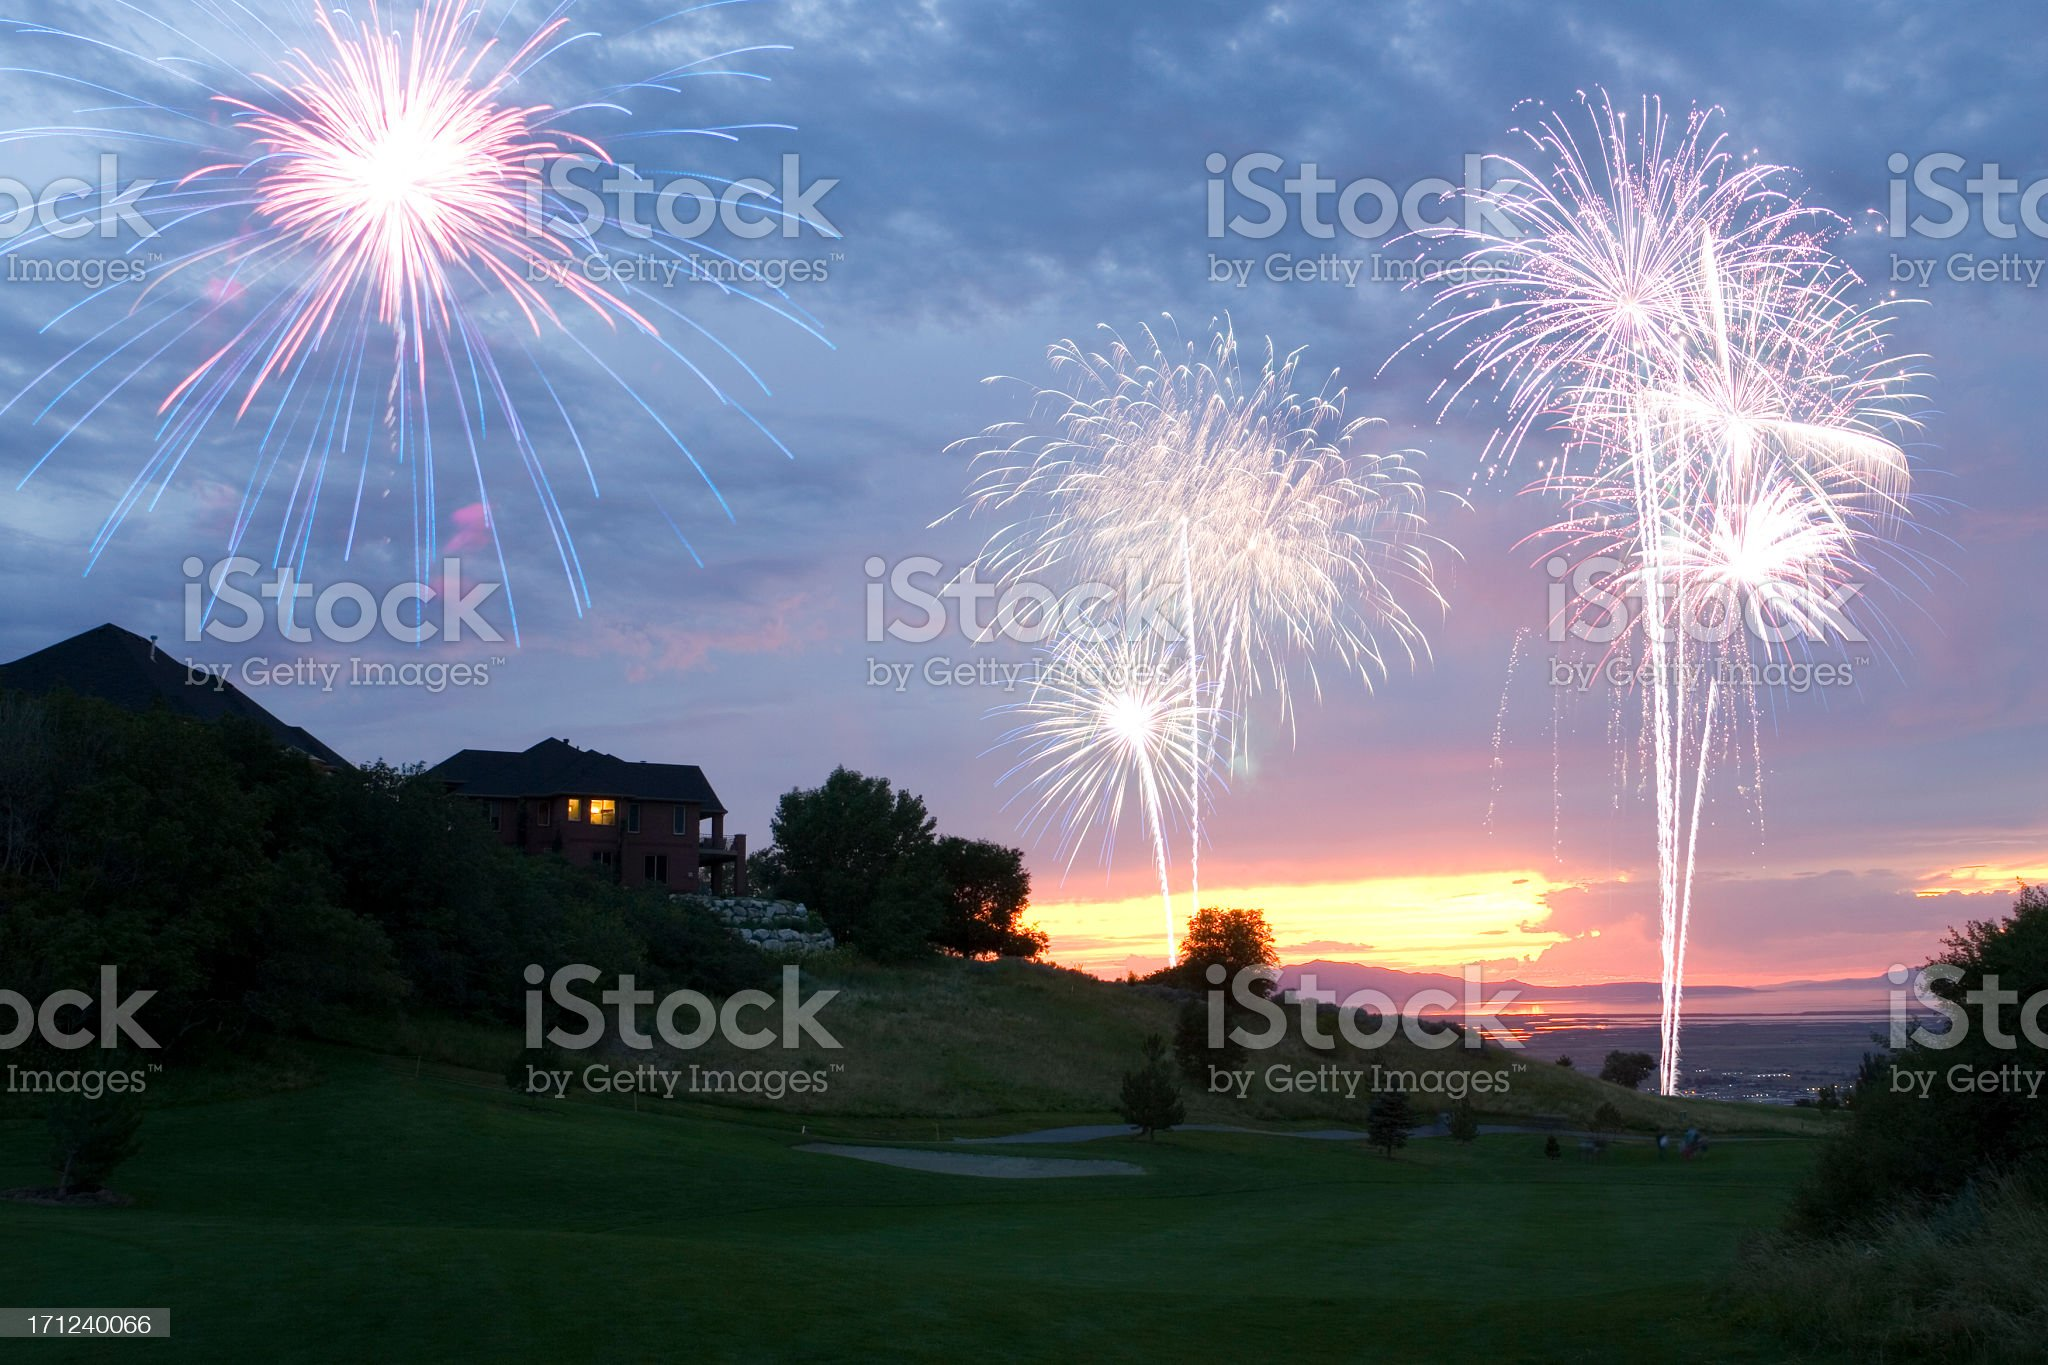 Fireworks at Sunset Over Golf Course royalty-free stock photo